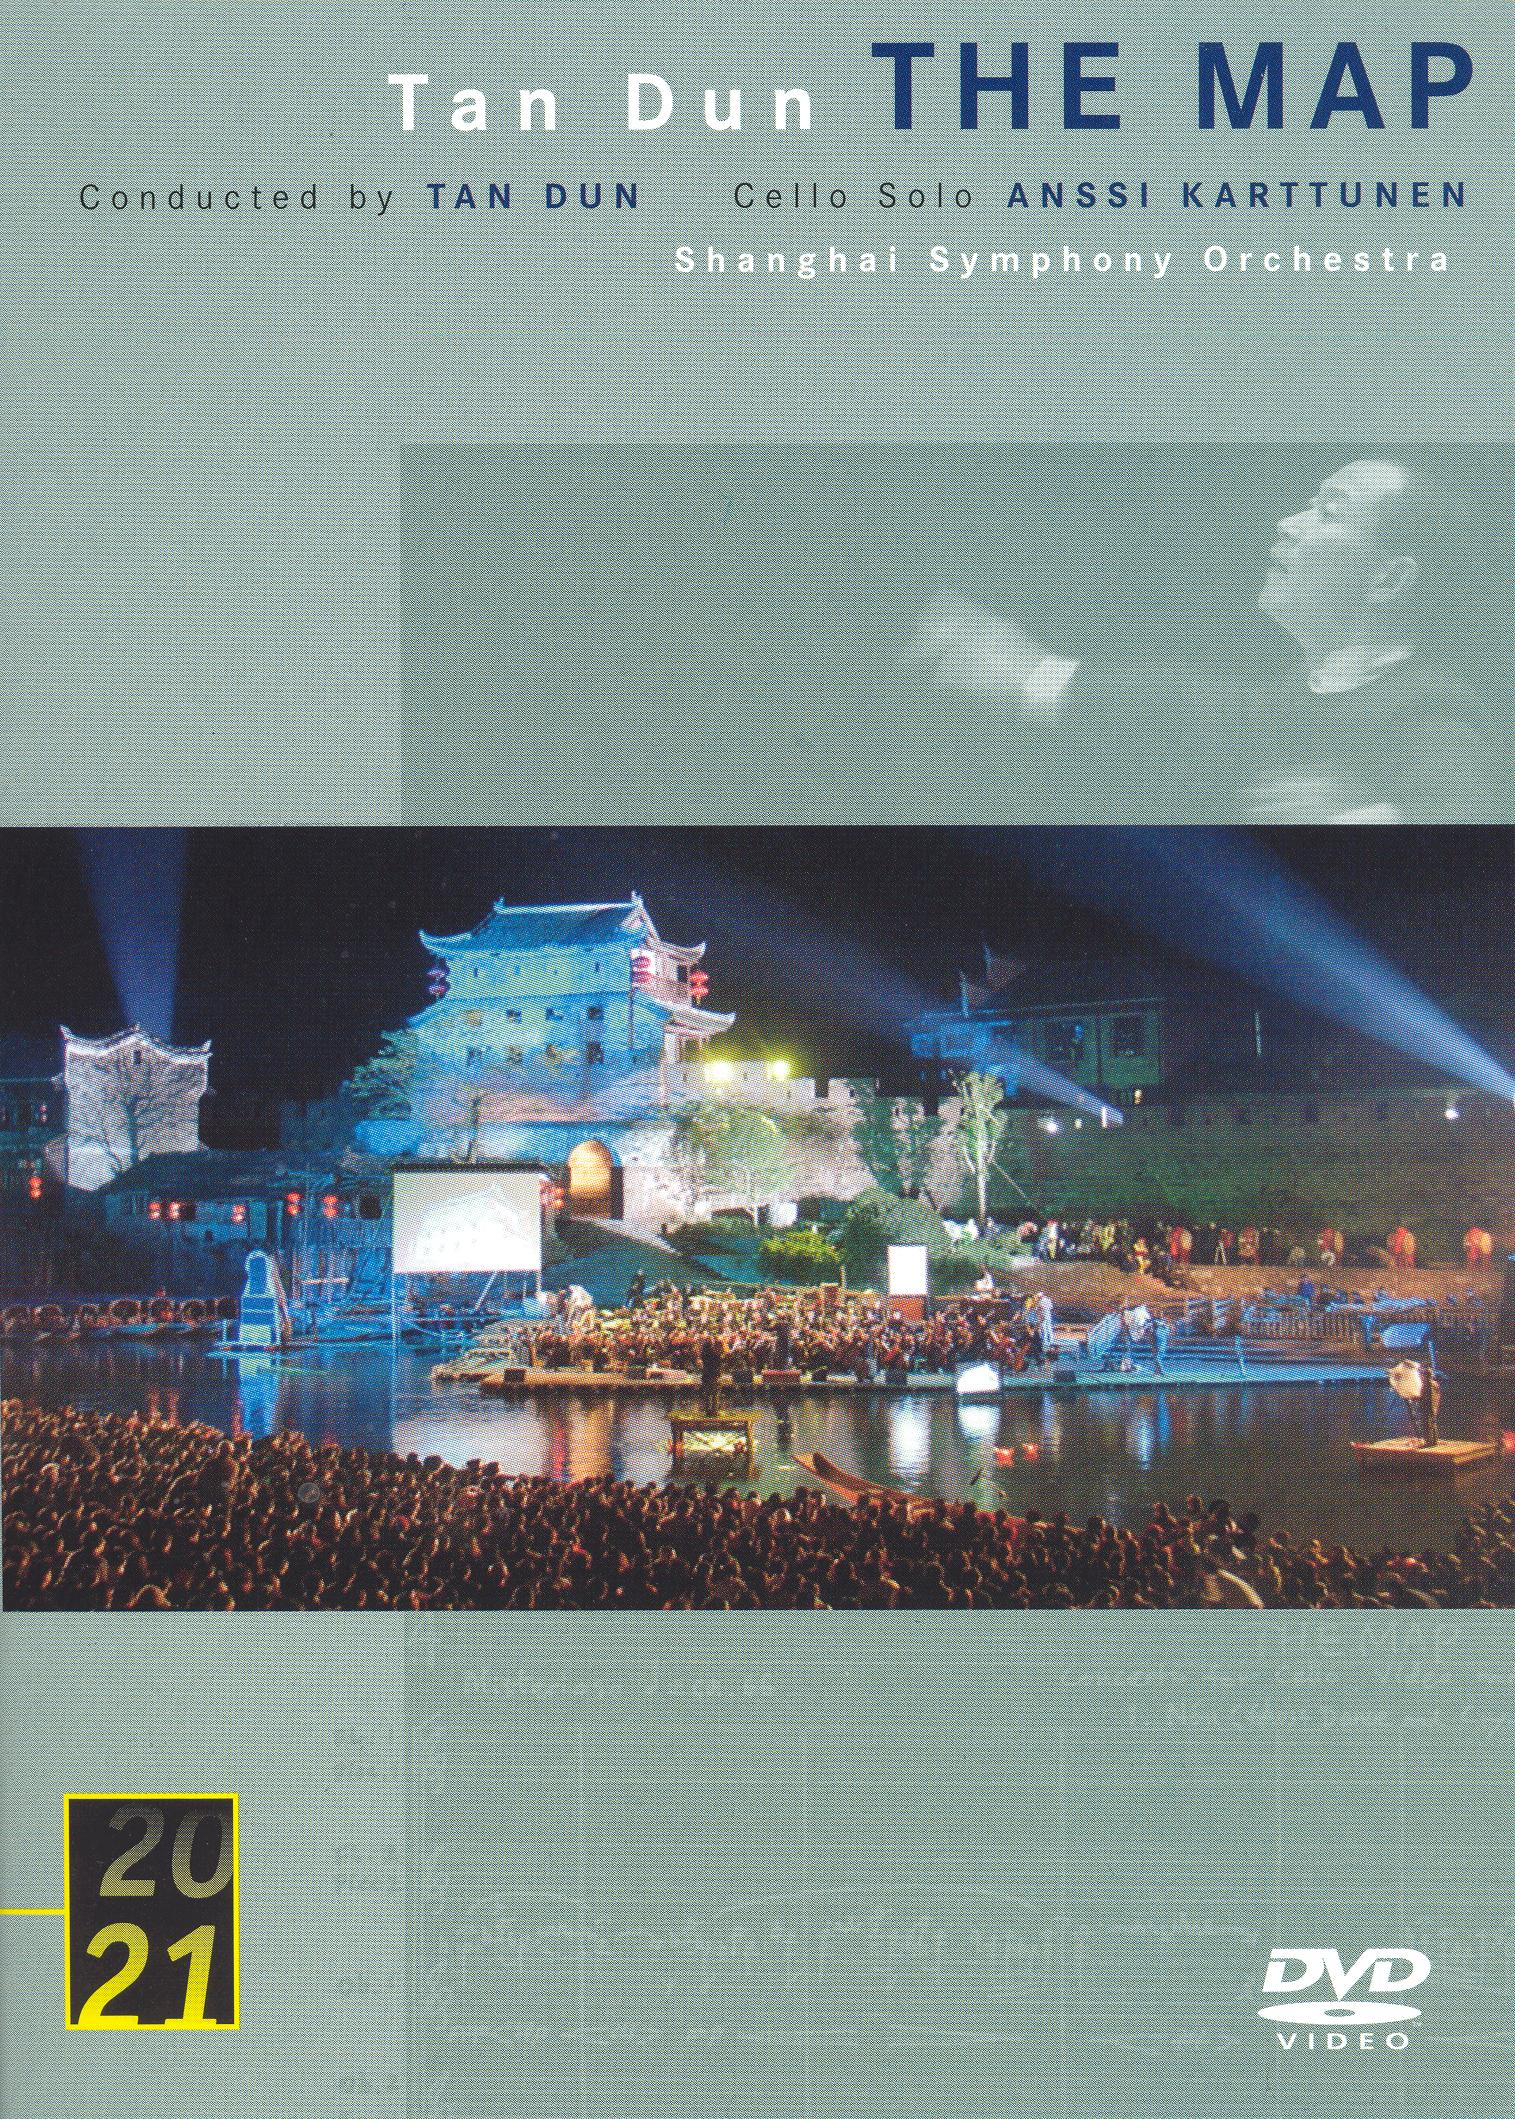 Tan Dun: The Map